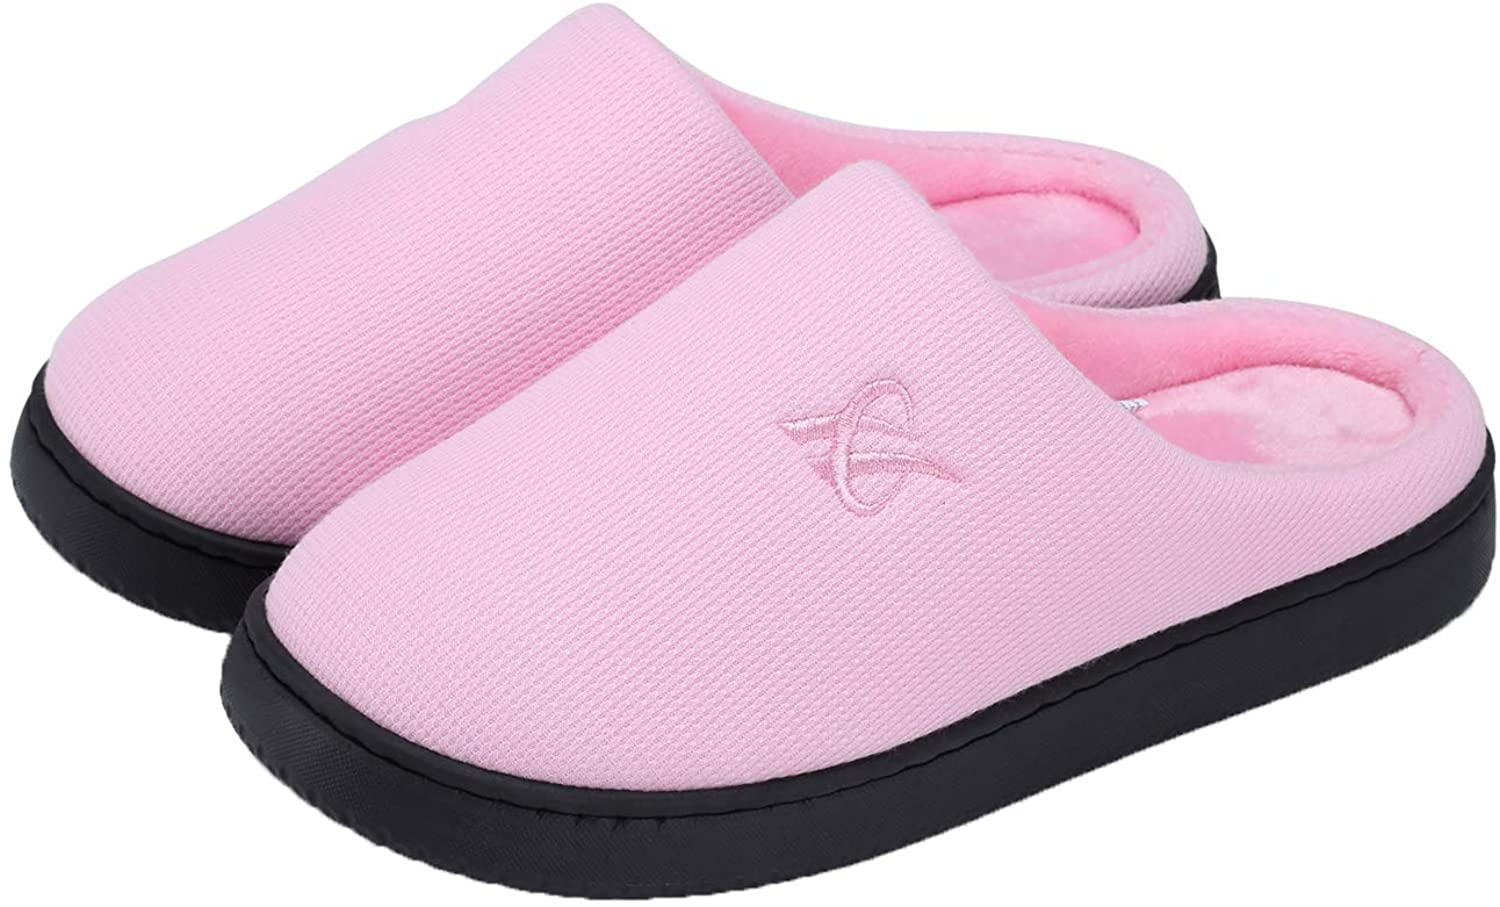 landeer Memory Foam Cotton Slippers Couple Style Men's and Women's House Casual Shoes